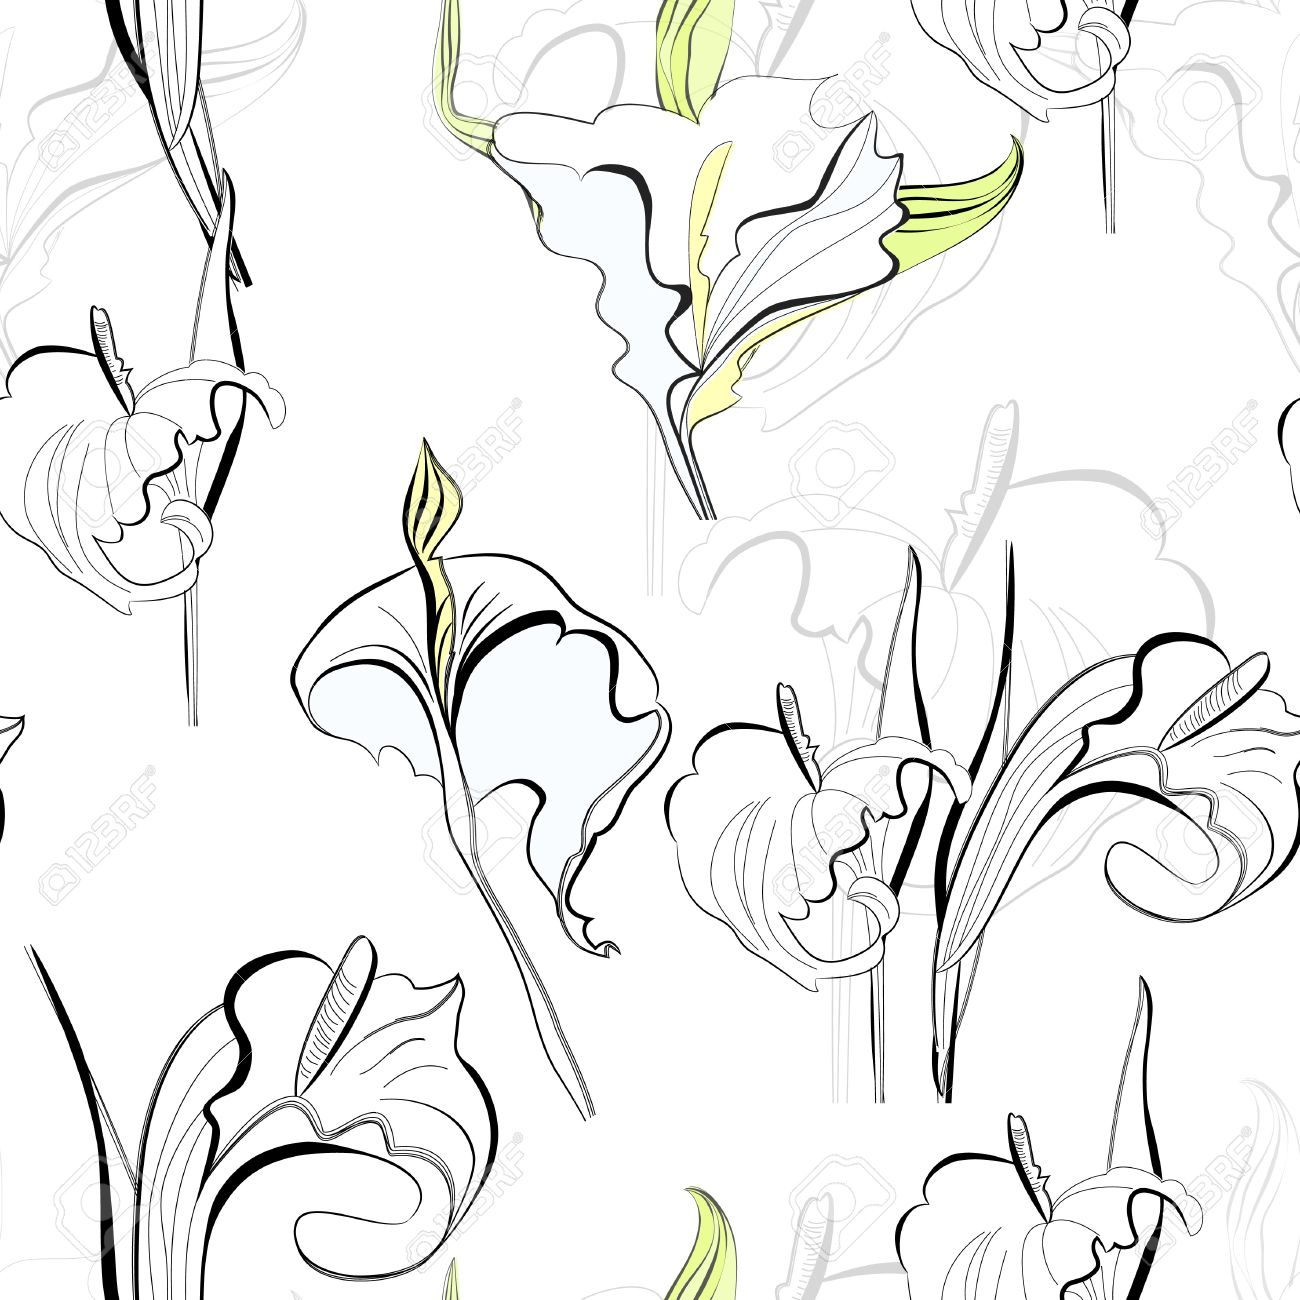 1300x1300 Calla Lily Flower Drawing. Calla Lilies Simple Drawing Vector